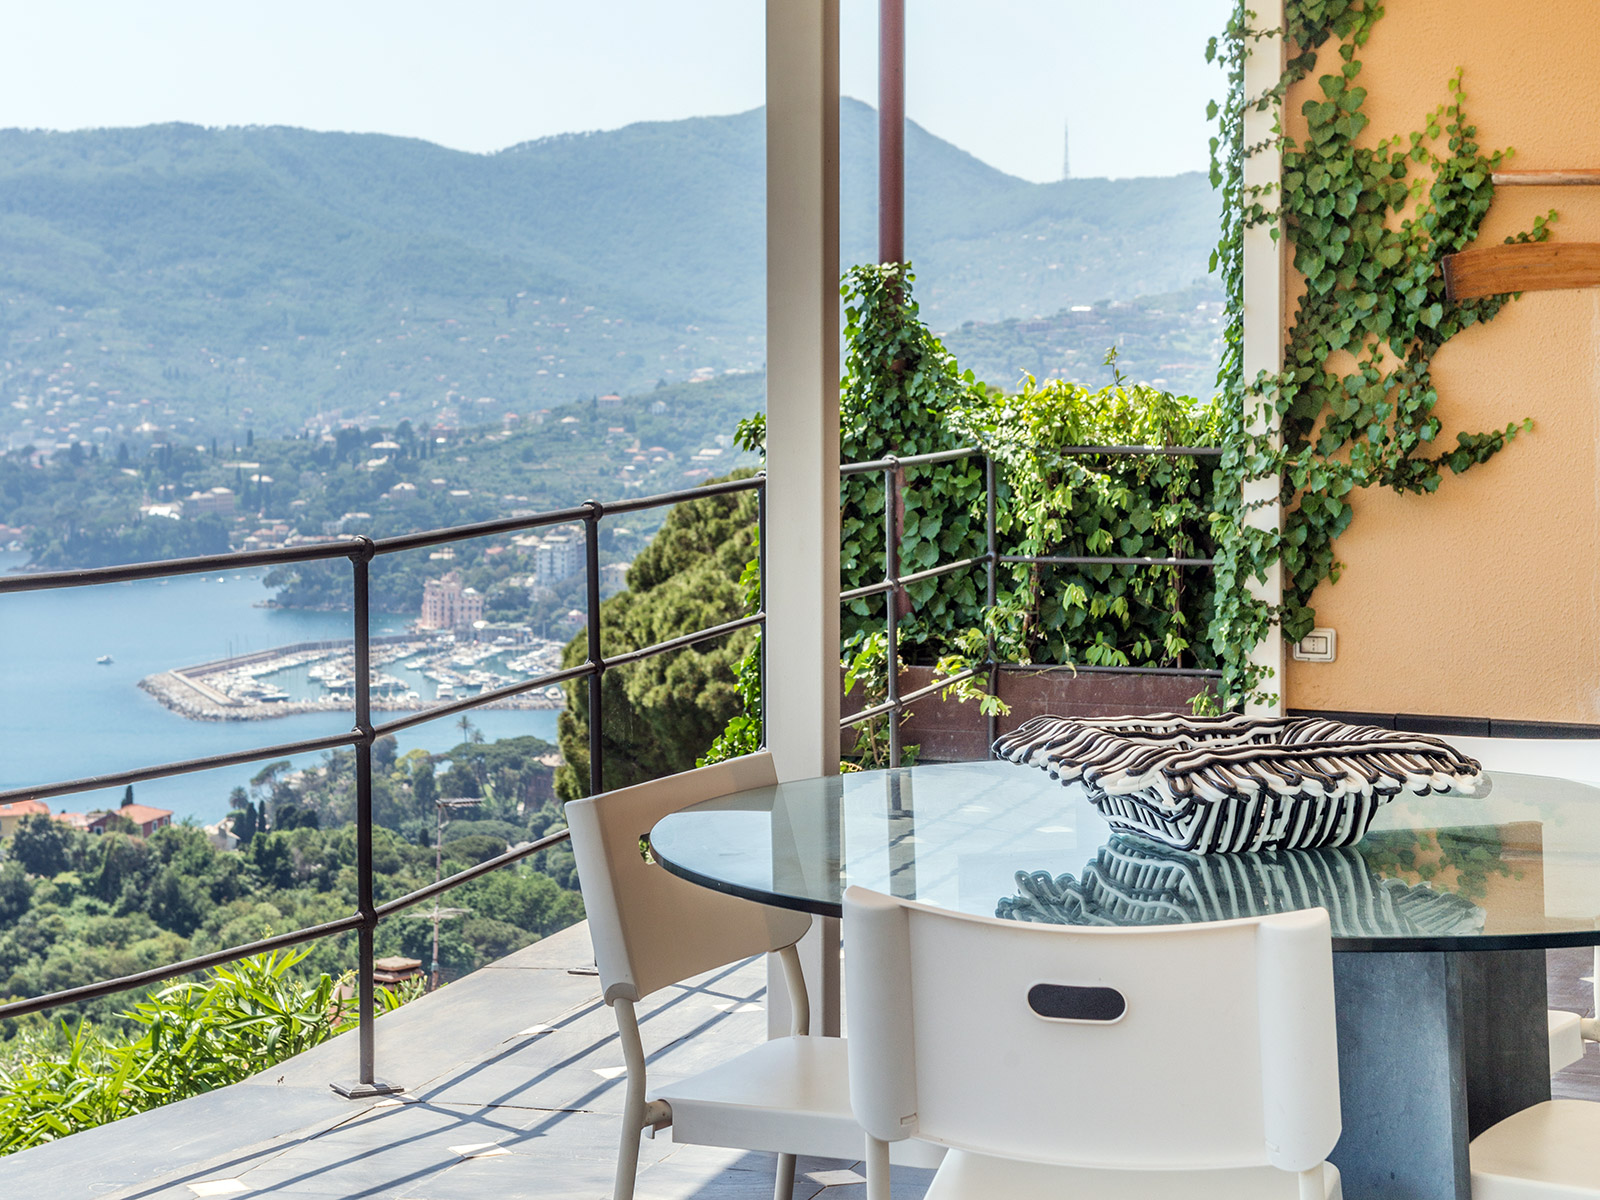 Additional photo for property listing at Panoramic waterfront villa with pool Via Sant' Ambrogio Zoagli, Genoa 16035 Italia